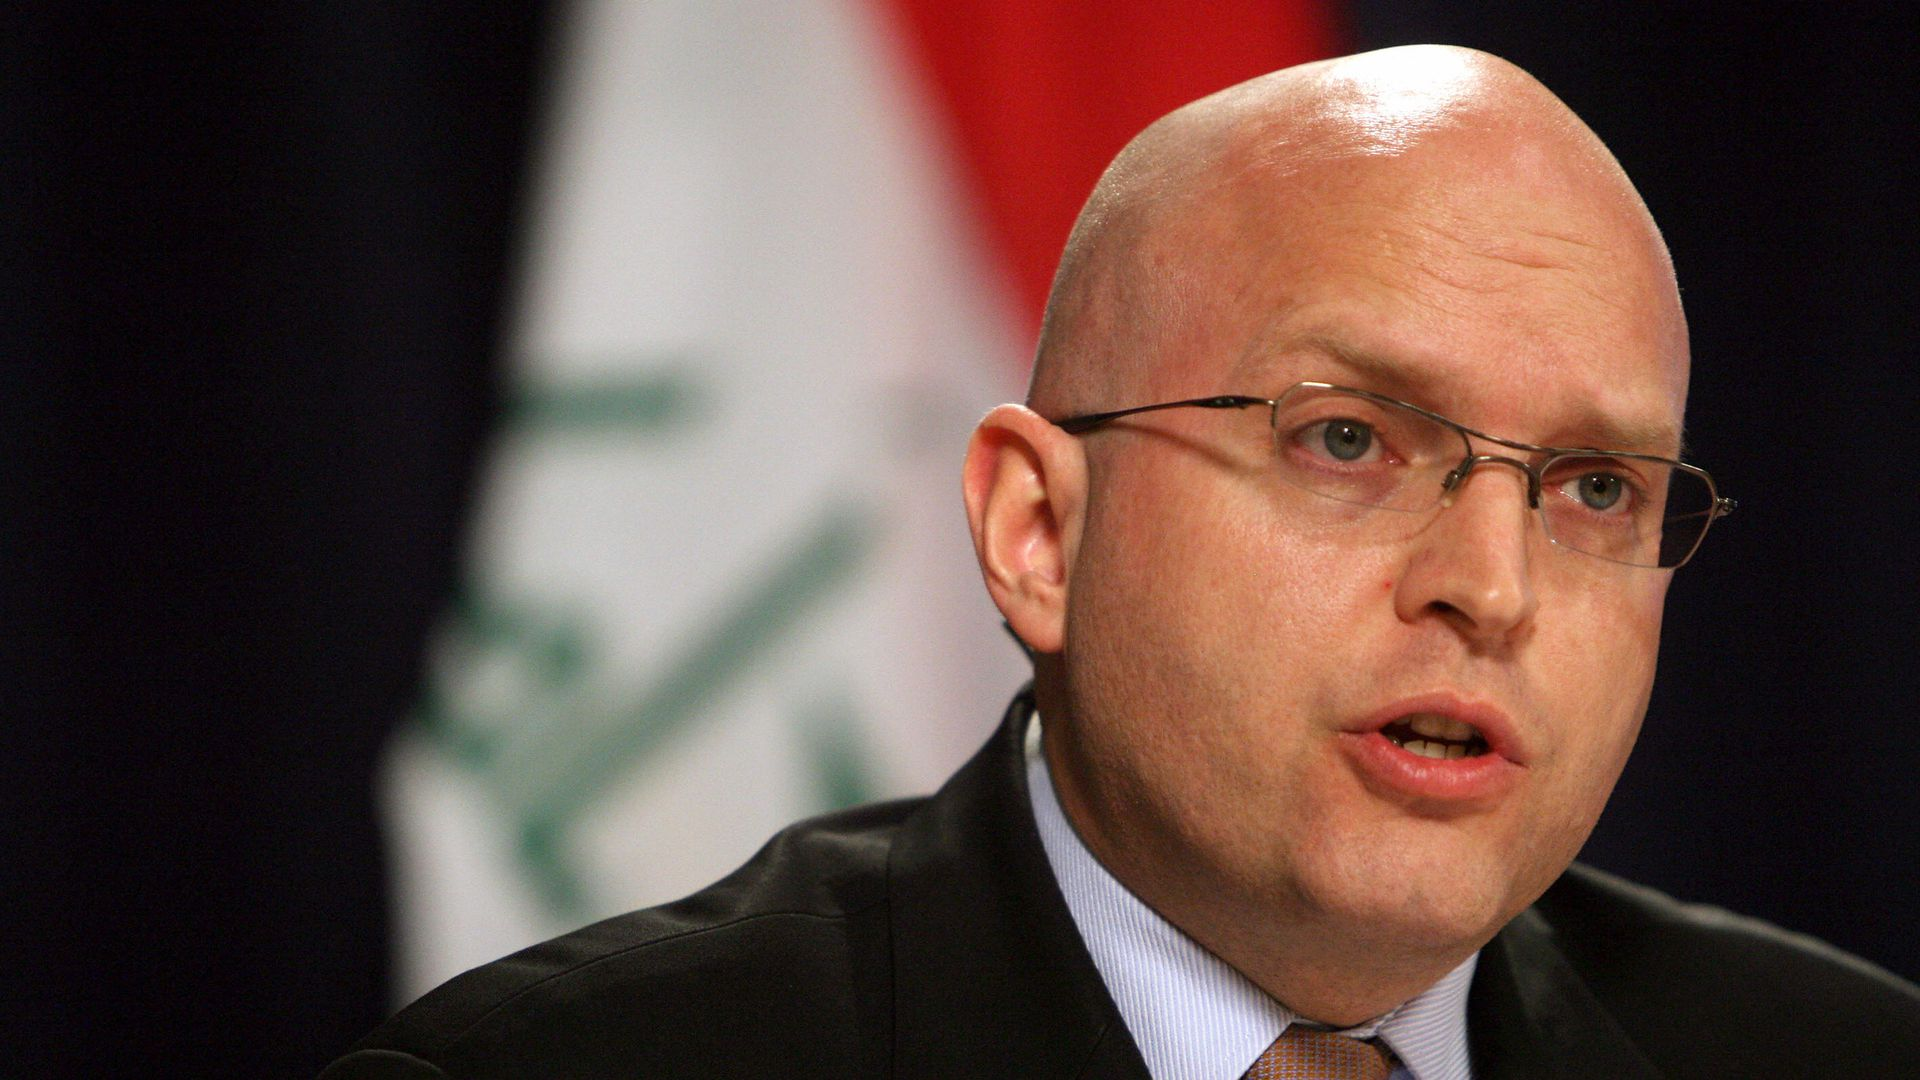 Phil Reeker, US Embassy in Iraq spokesman, speaks during a joint press conference.